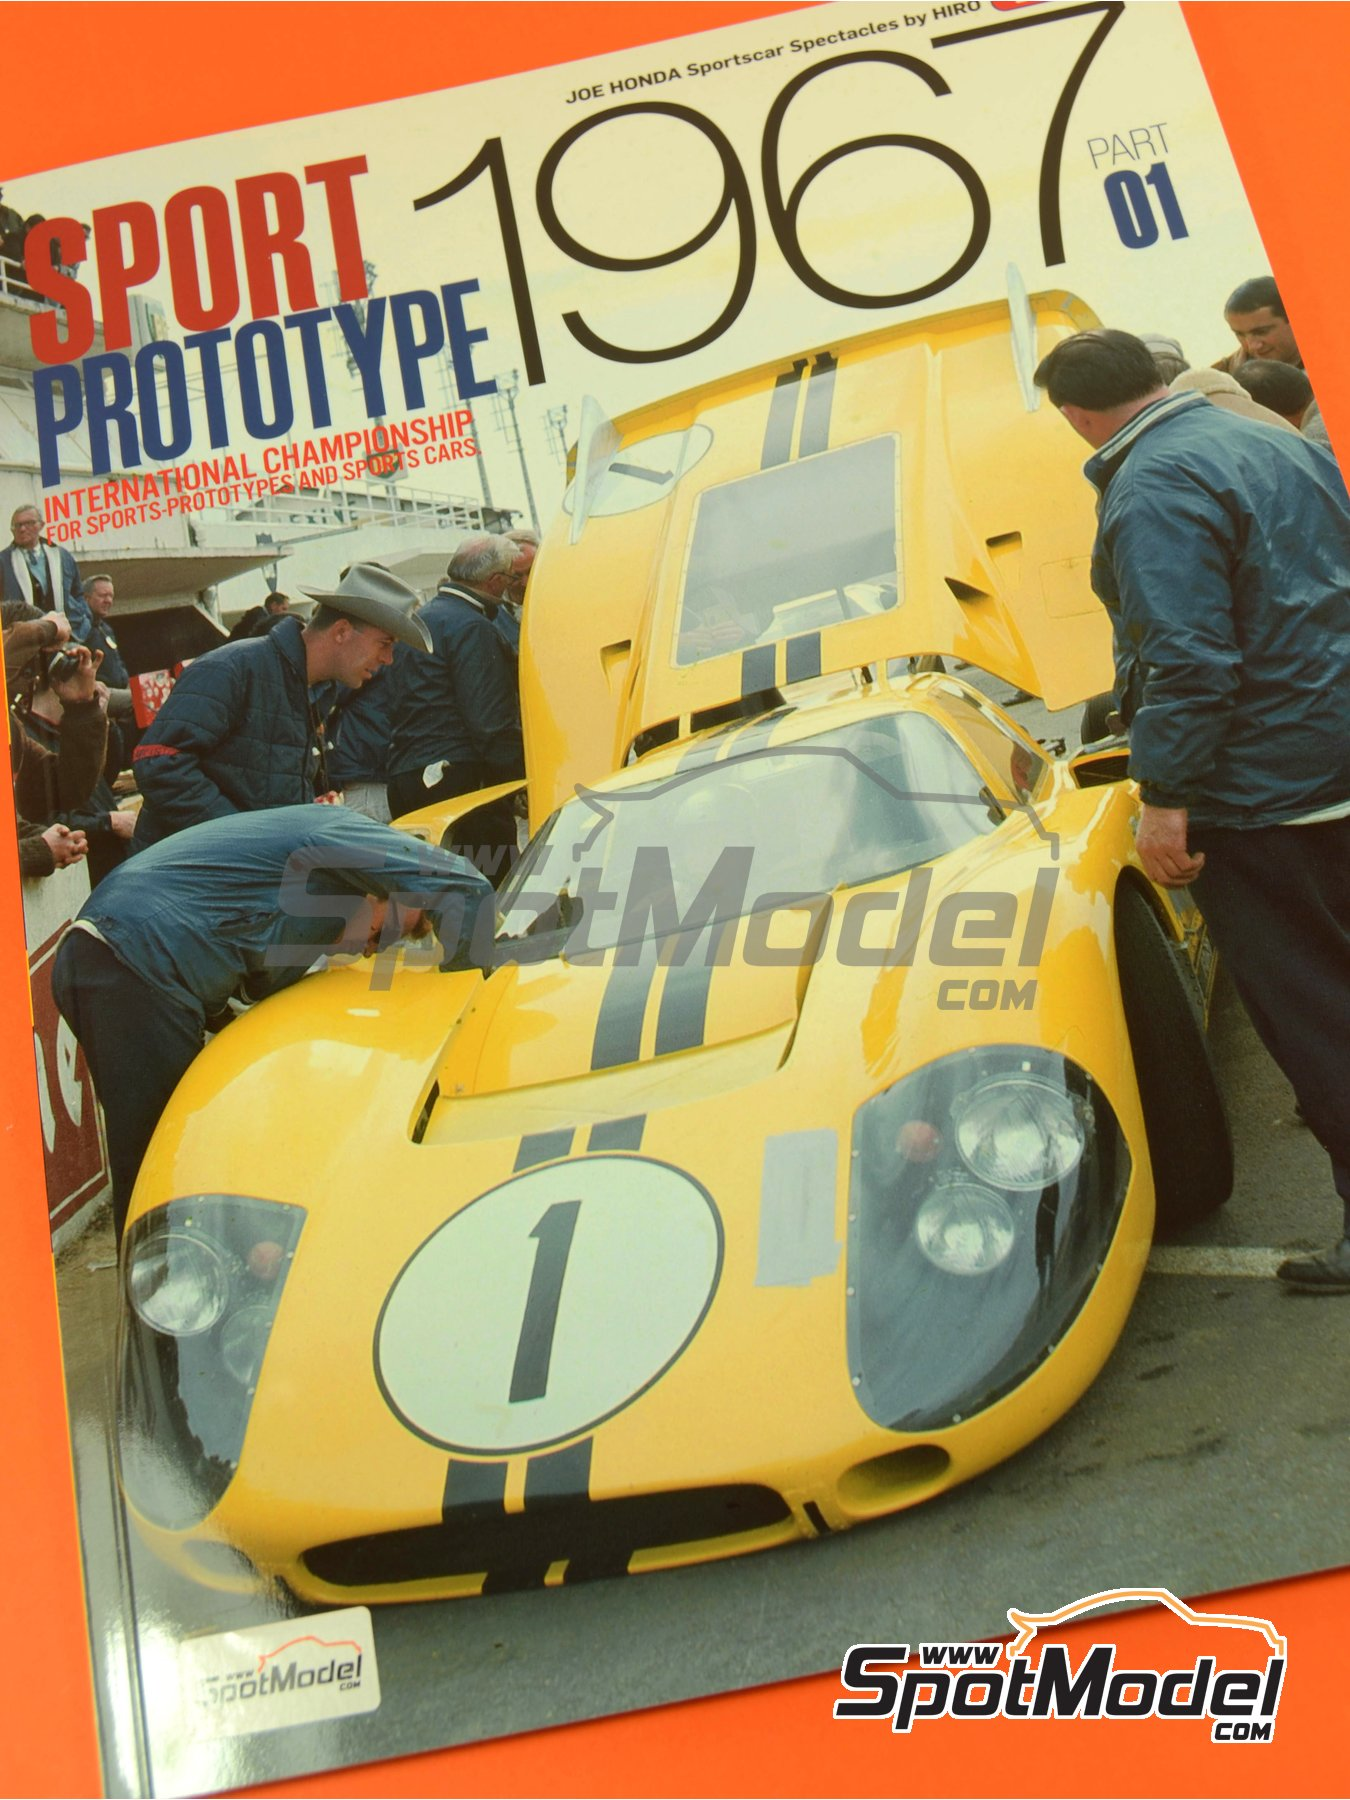 JOE HONDA - Sportcar Spectacles - Sport Prototypes - Part 1 - 24 Hours Le Mans, Targa Florio 1967 | Reference / walkaround book manufactured by Model Factory Hiro (ref. MFH-SS008) image